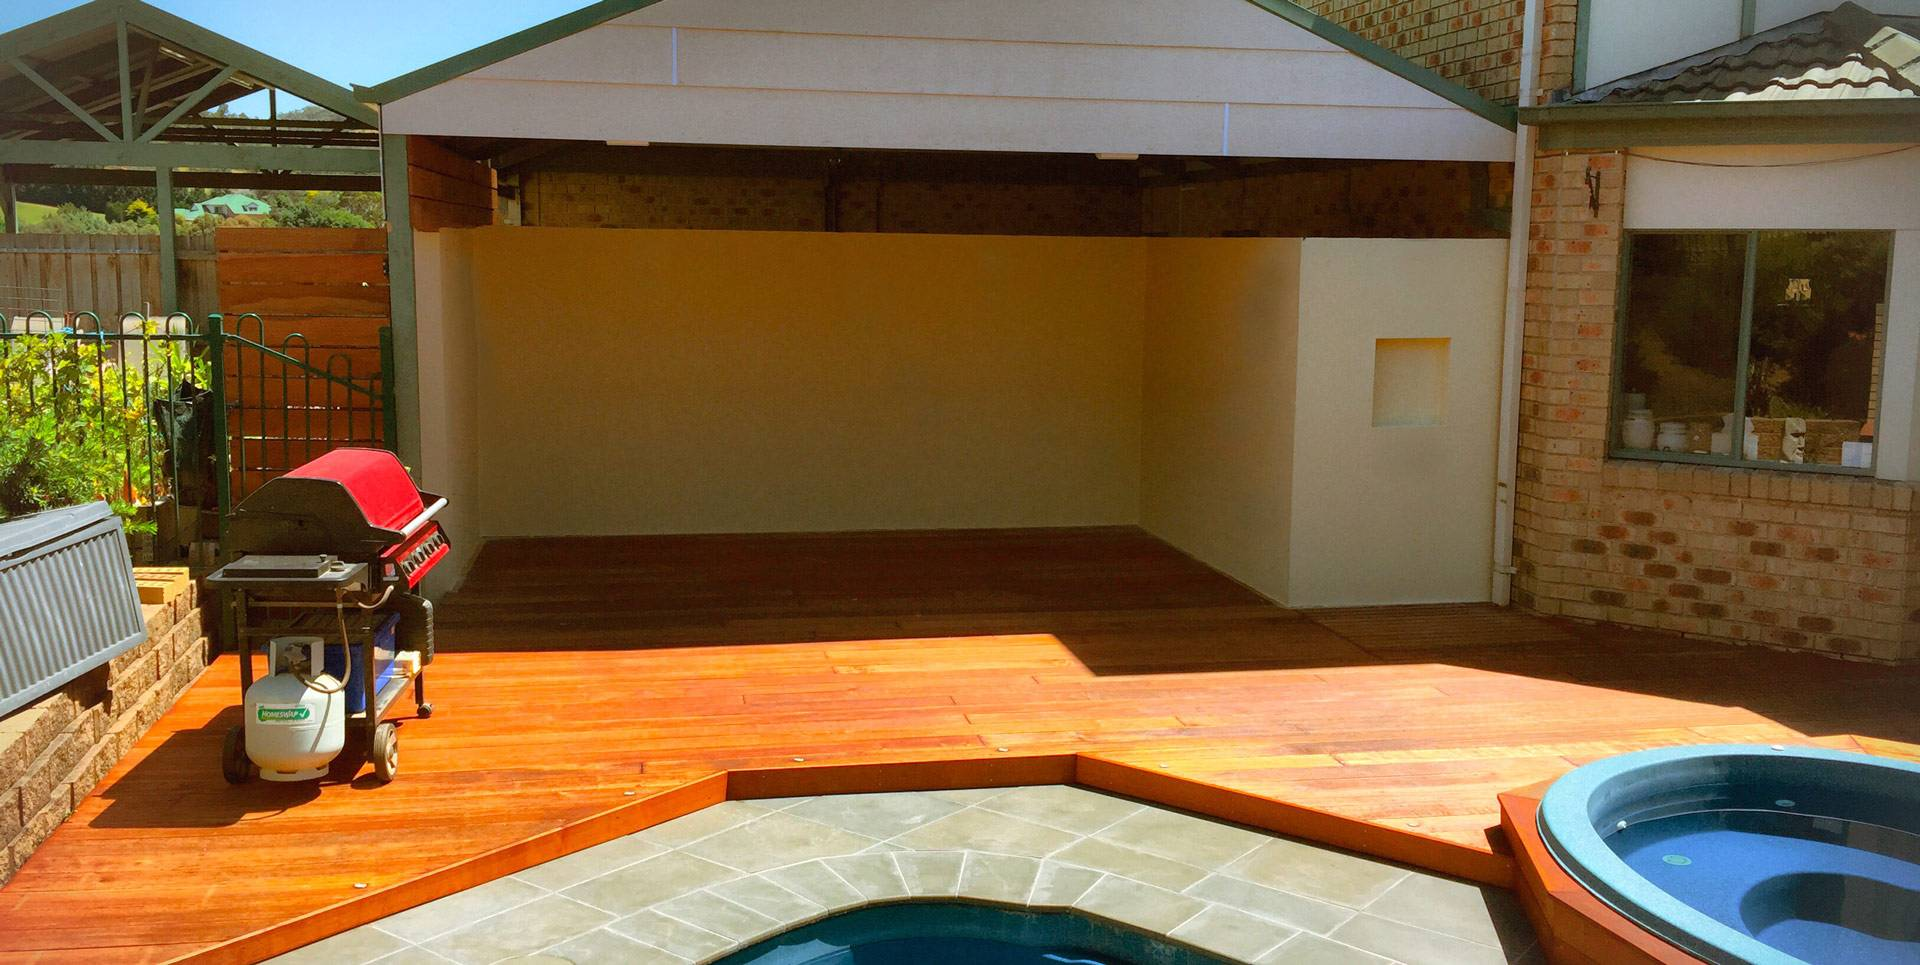 <p><b>Customize any outdoor area<br /> with a stylish and practical deck<br /> or pergola to suit your needs</b></p>